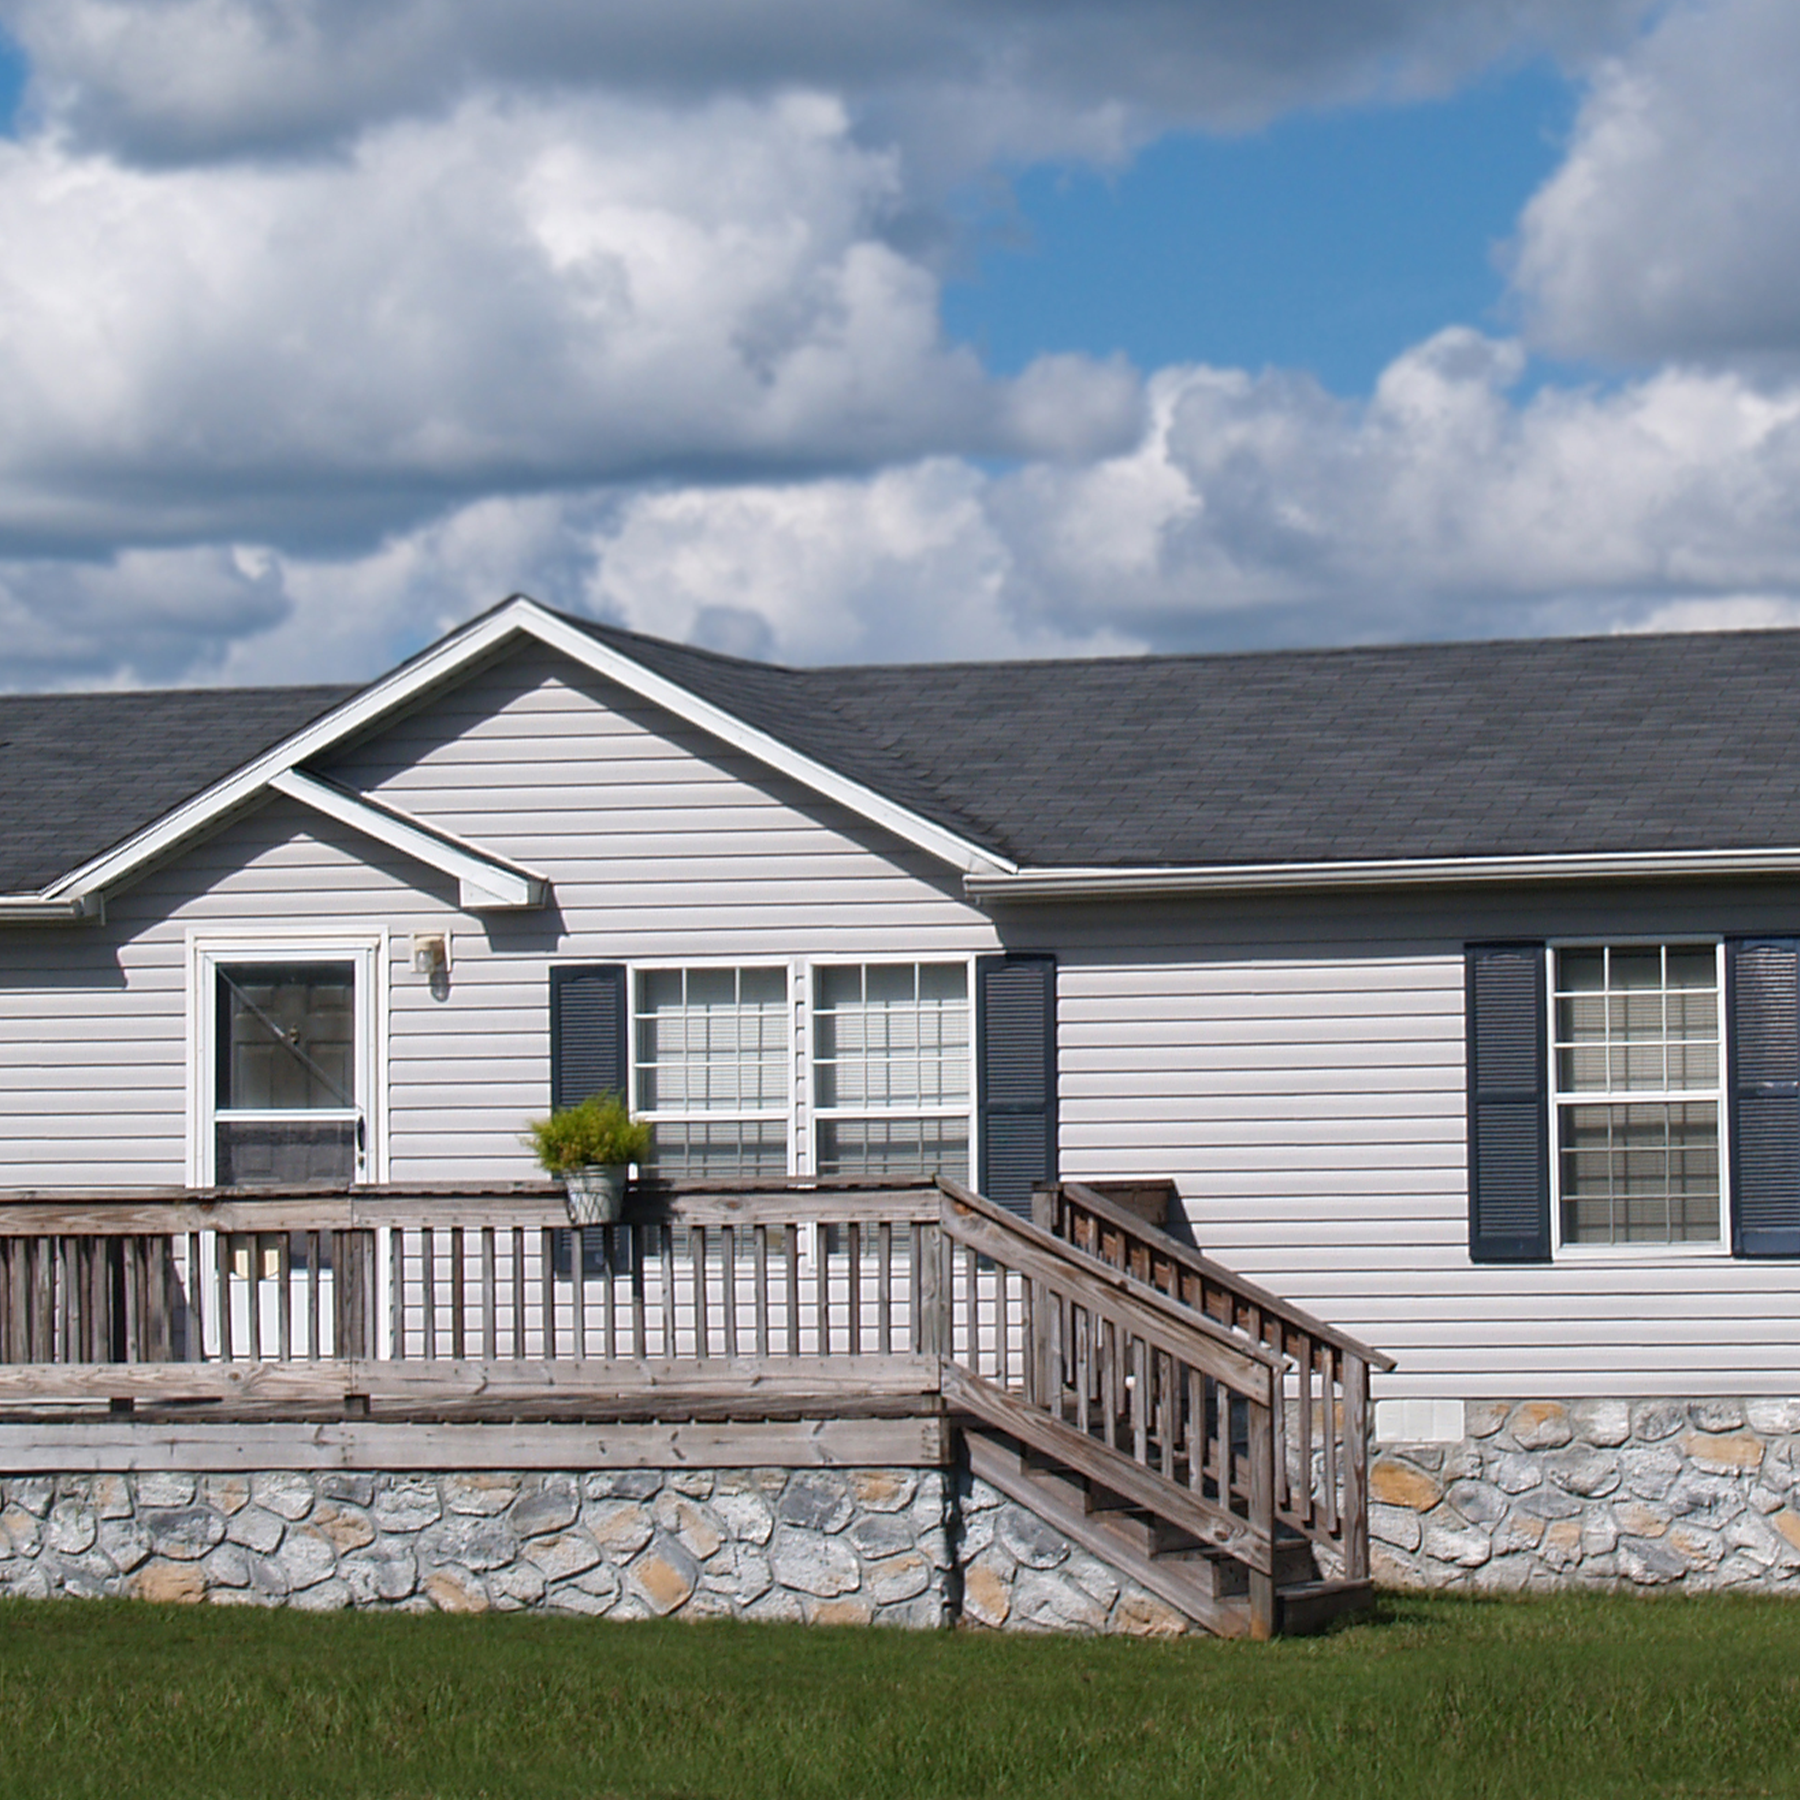 Photo of a manufactured home